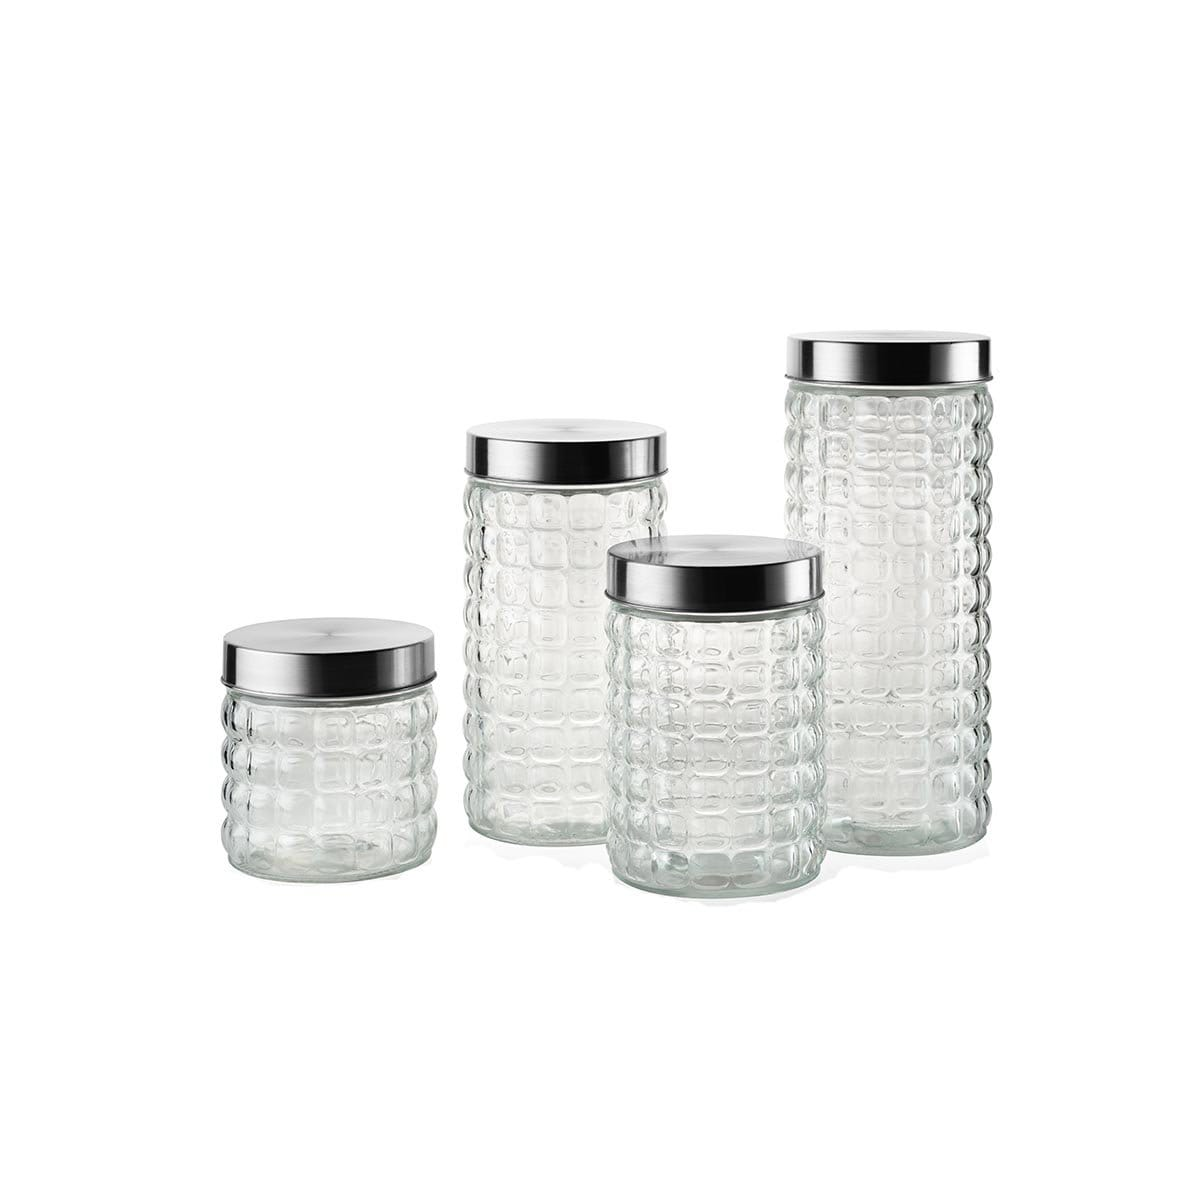 Top Point Glass Canister Set (4pc)